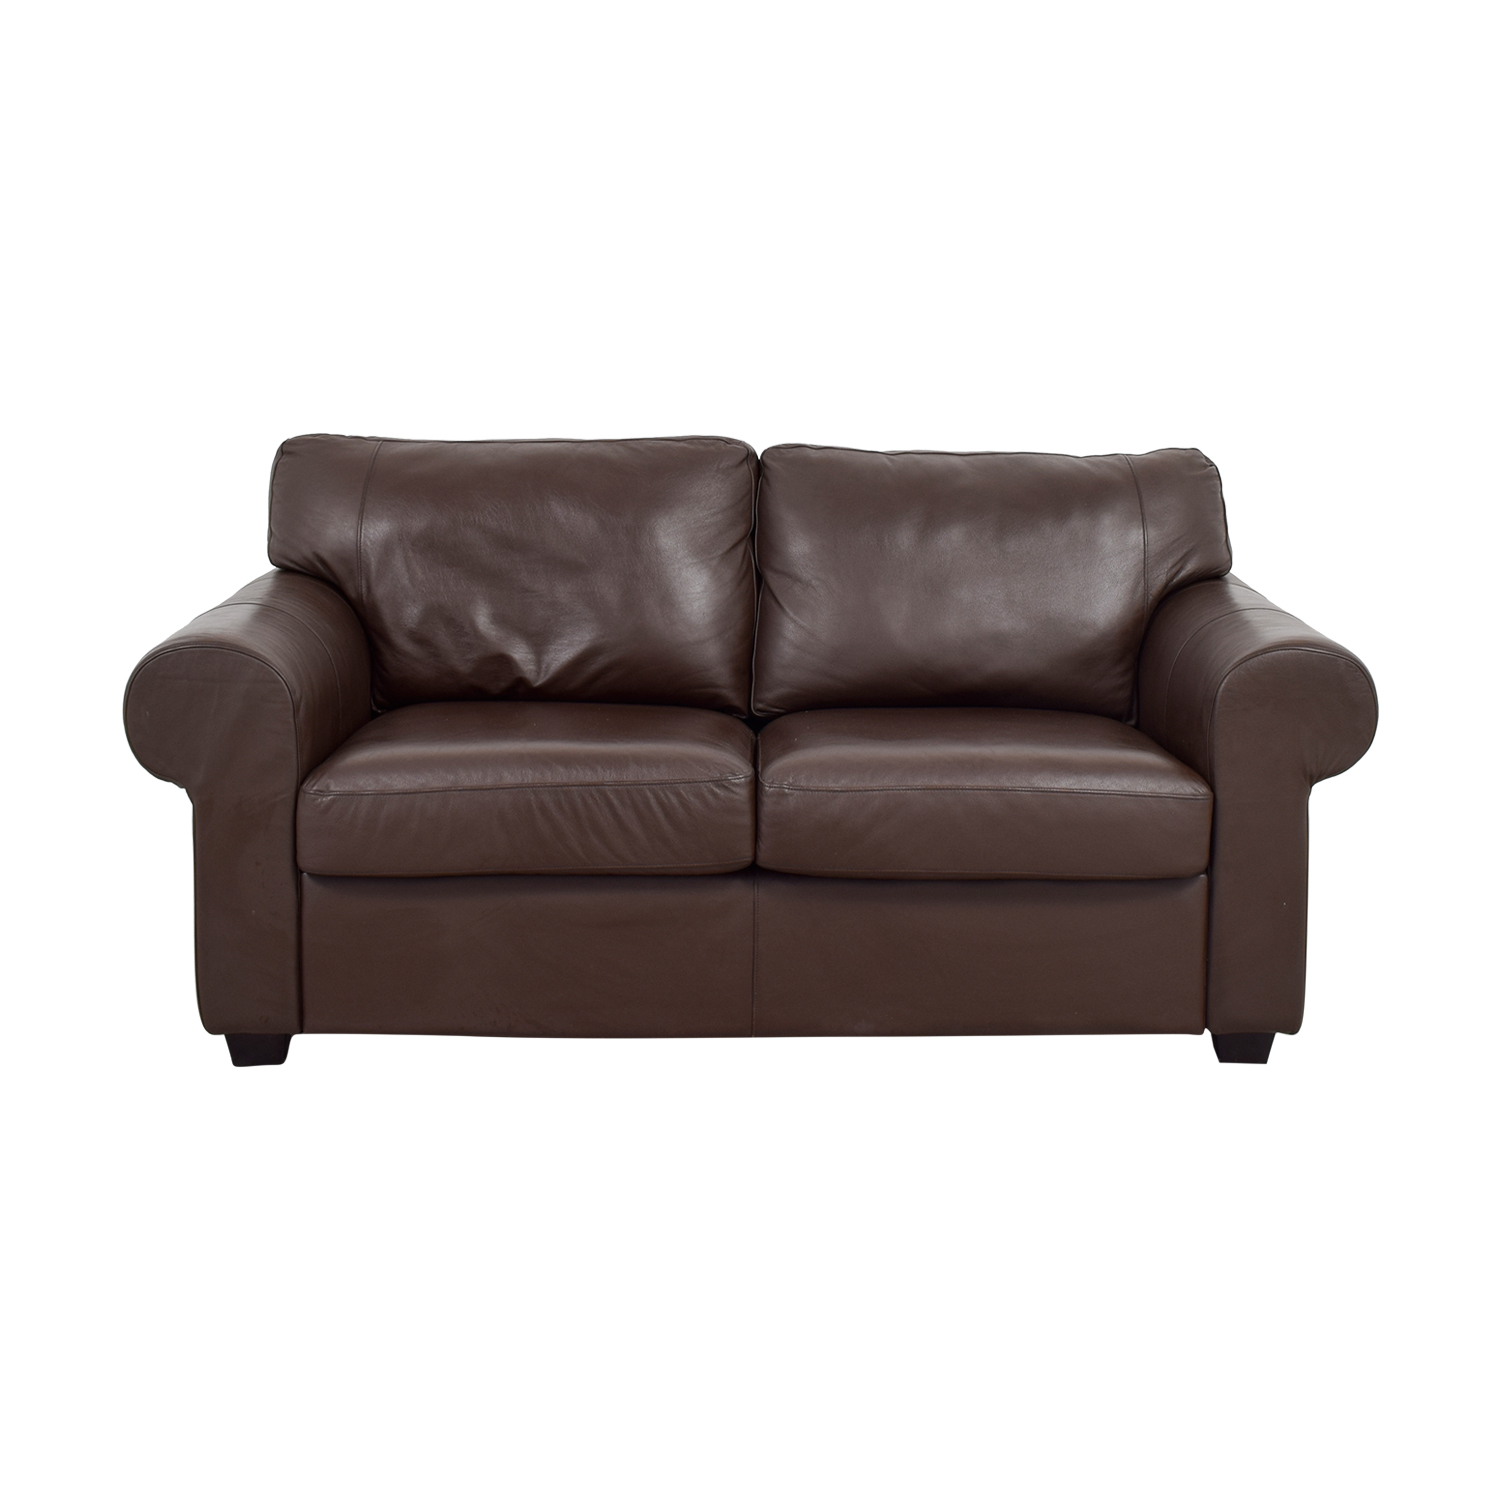 73 Off Brown Leather Curved Arm Loveseat Sofas